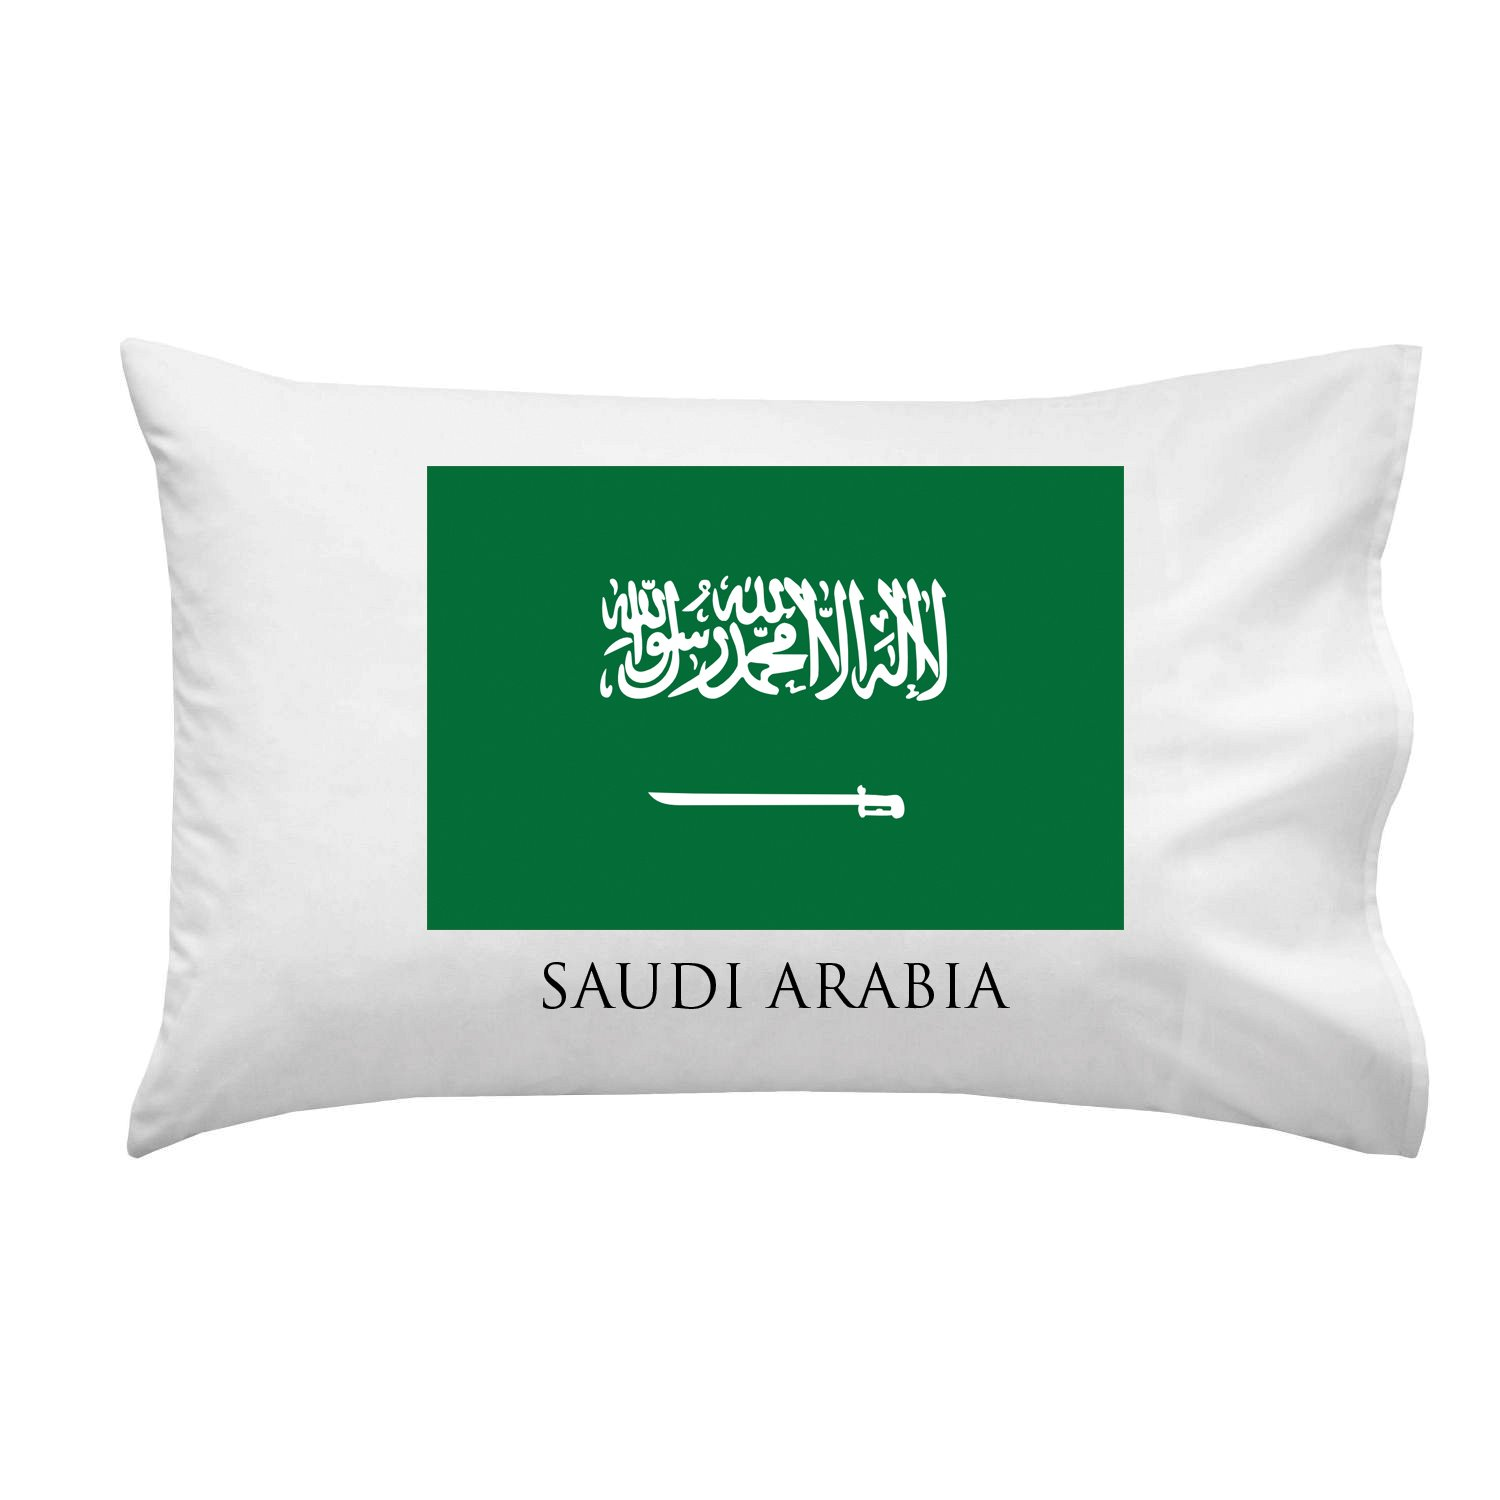 Saudi Arabia - World Country National Flags - Pillow Case Single Pillowcase by Hat Shark